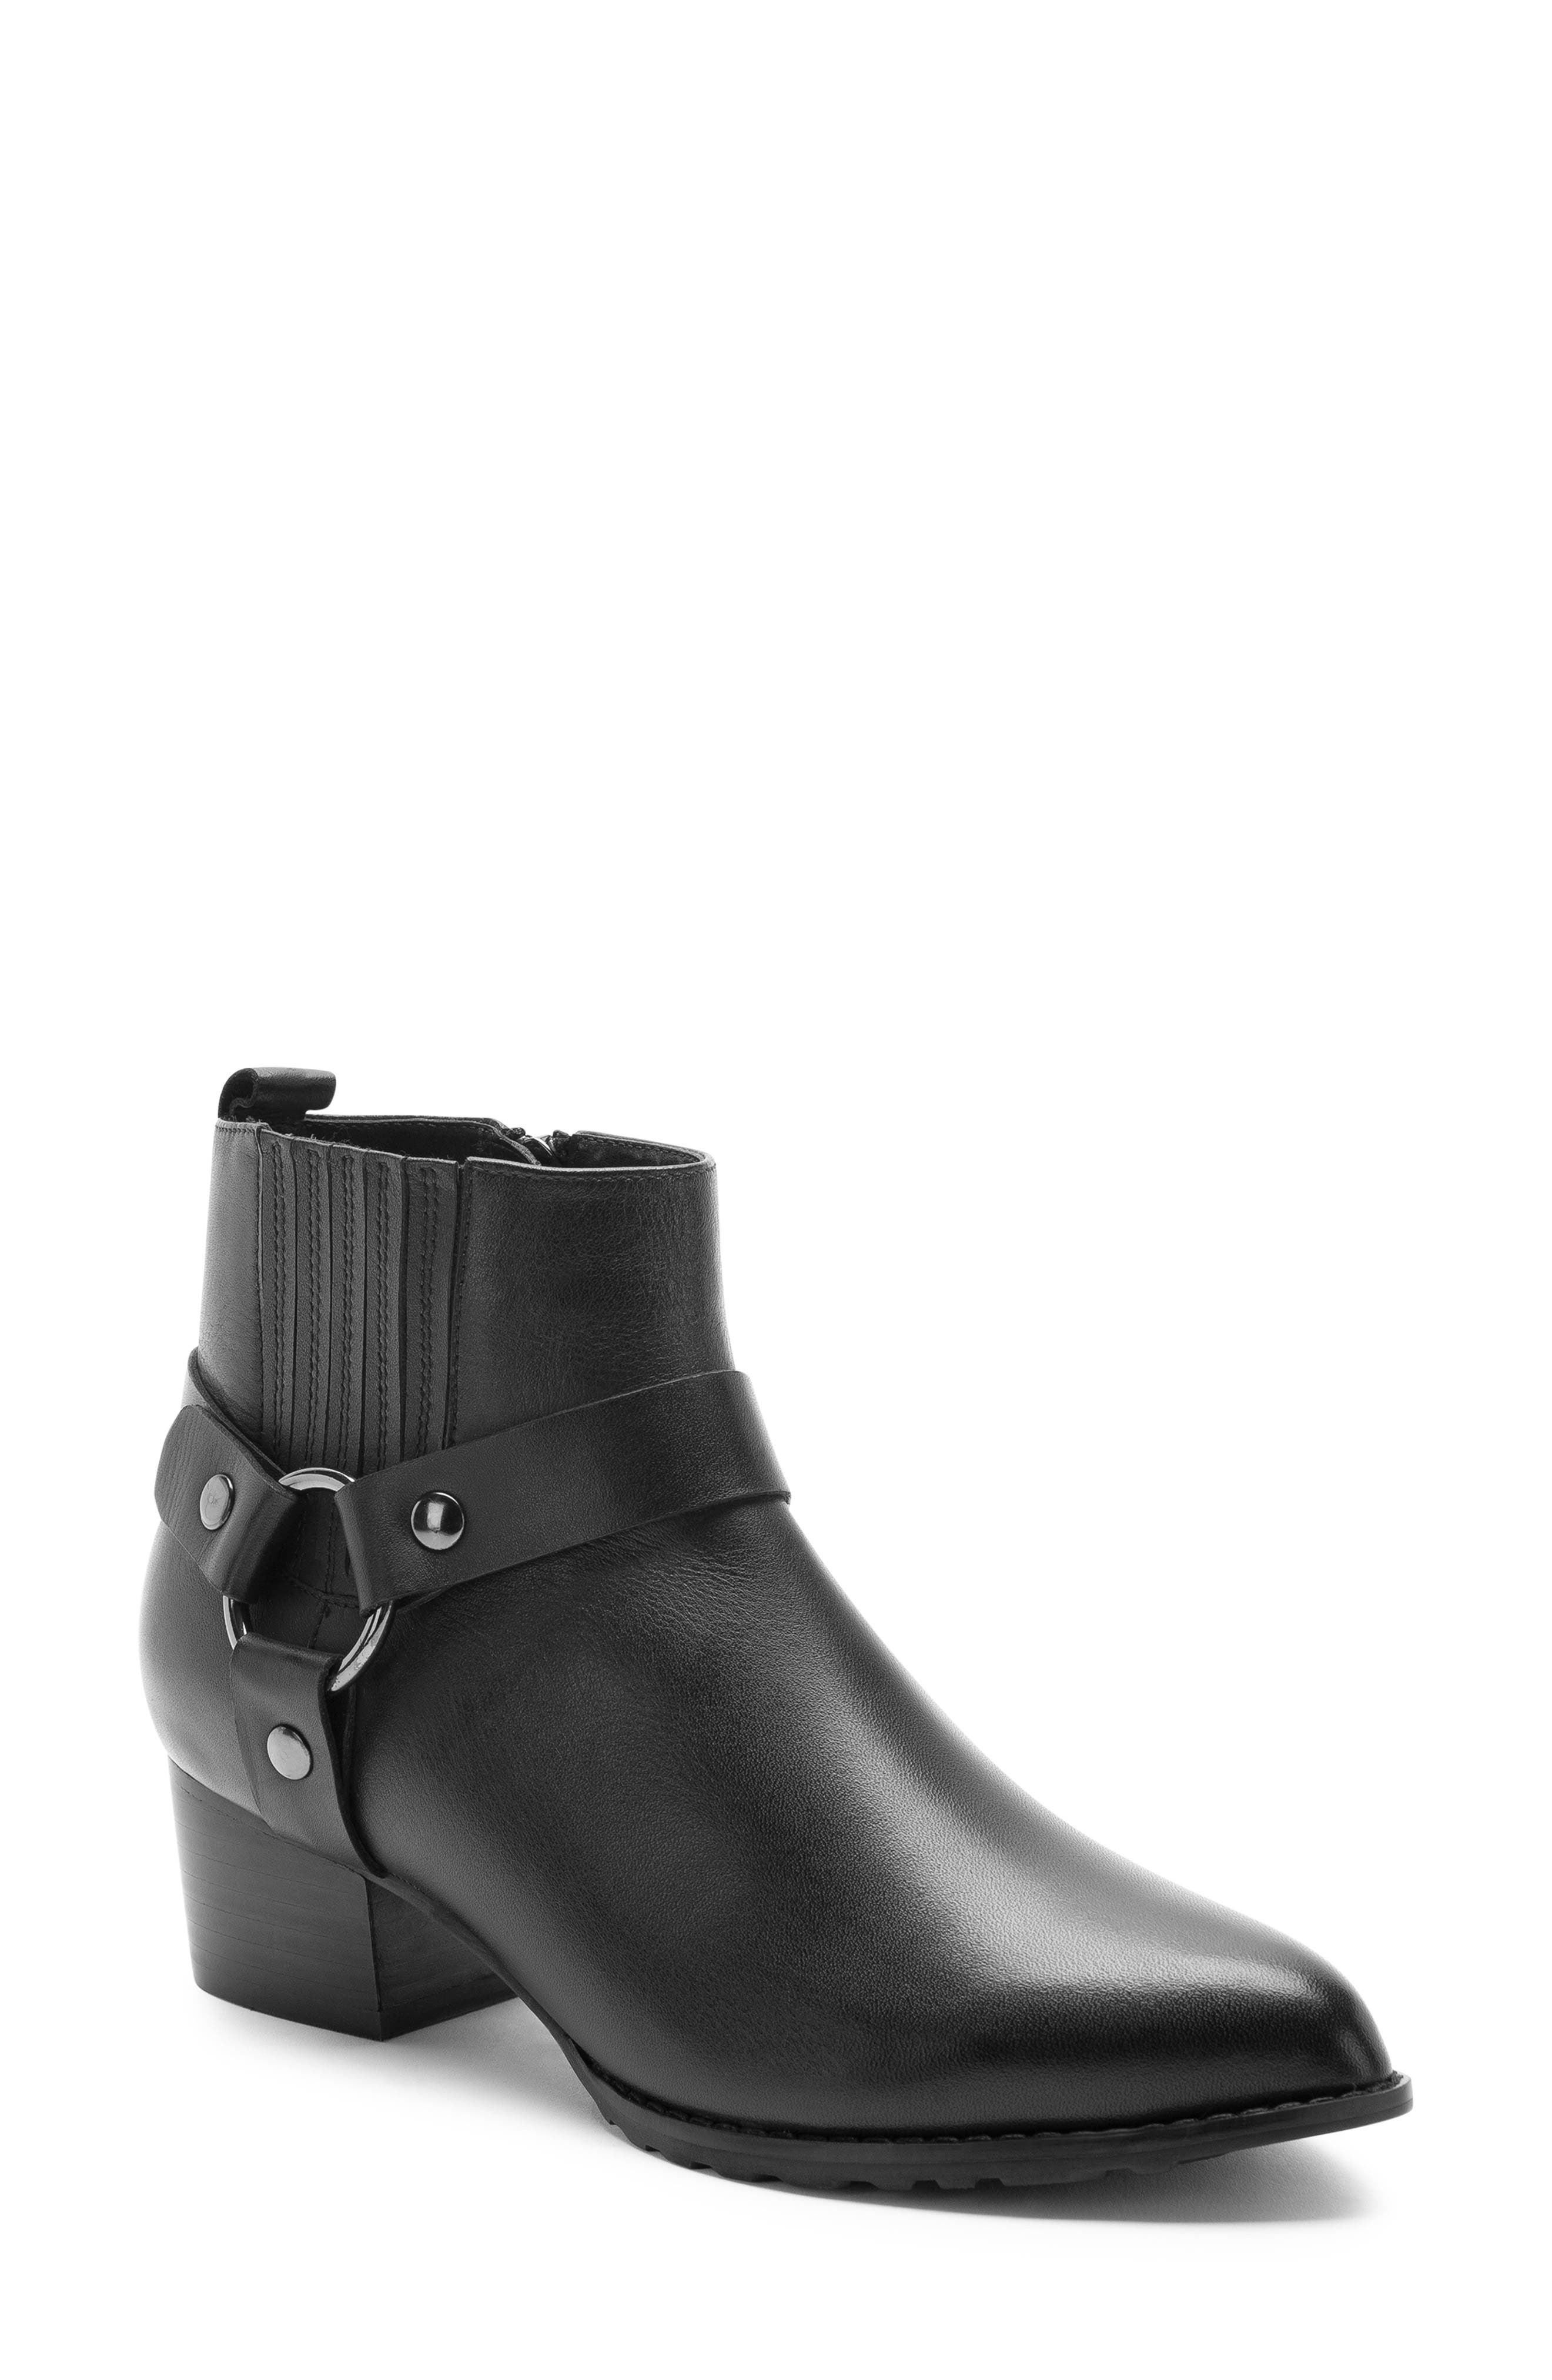 Tasha Waterproof Bootie,                             Main thumbnail 1, color,                             BLACK LEATHER